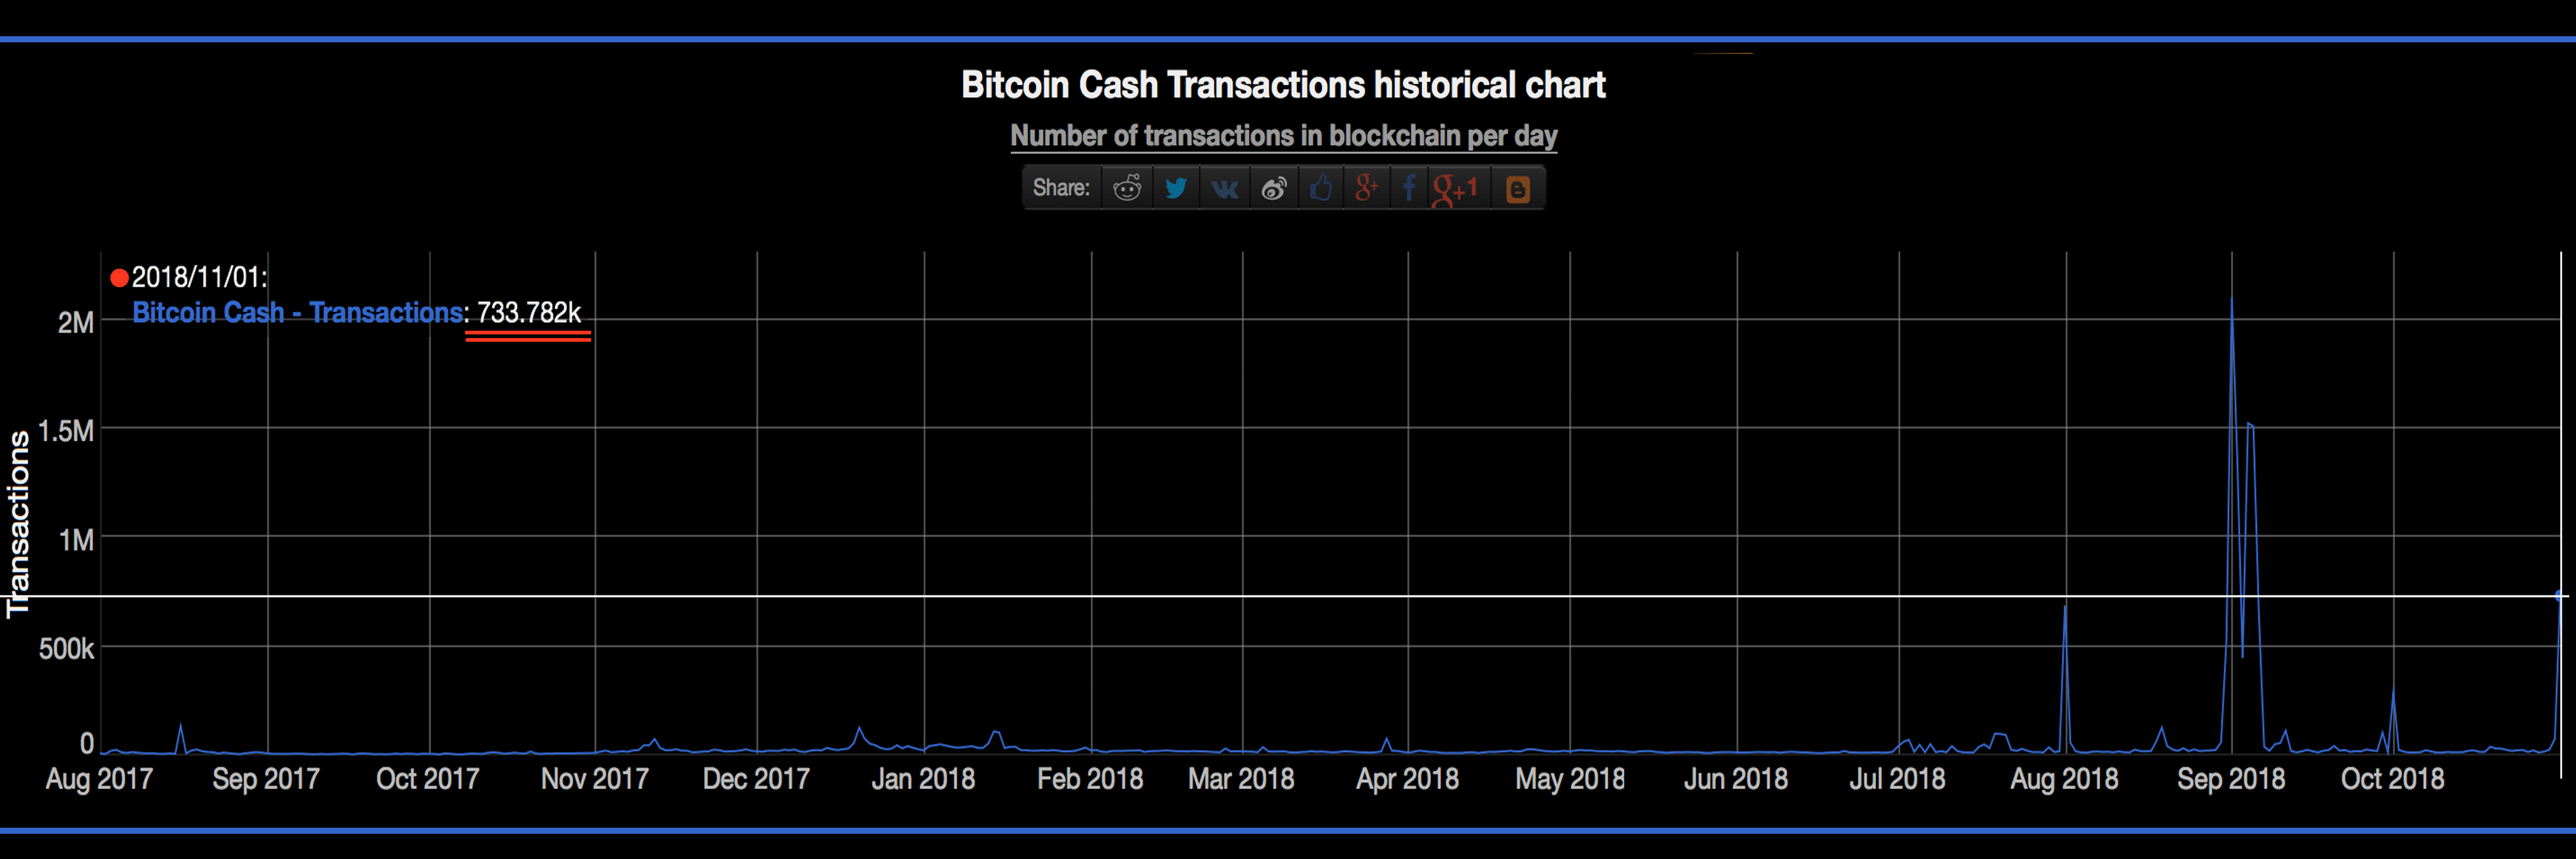 New Bitcoin Cash Stress Test Sees 700,000 Transactions in One Day